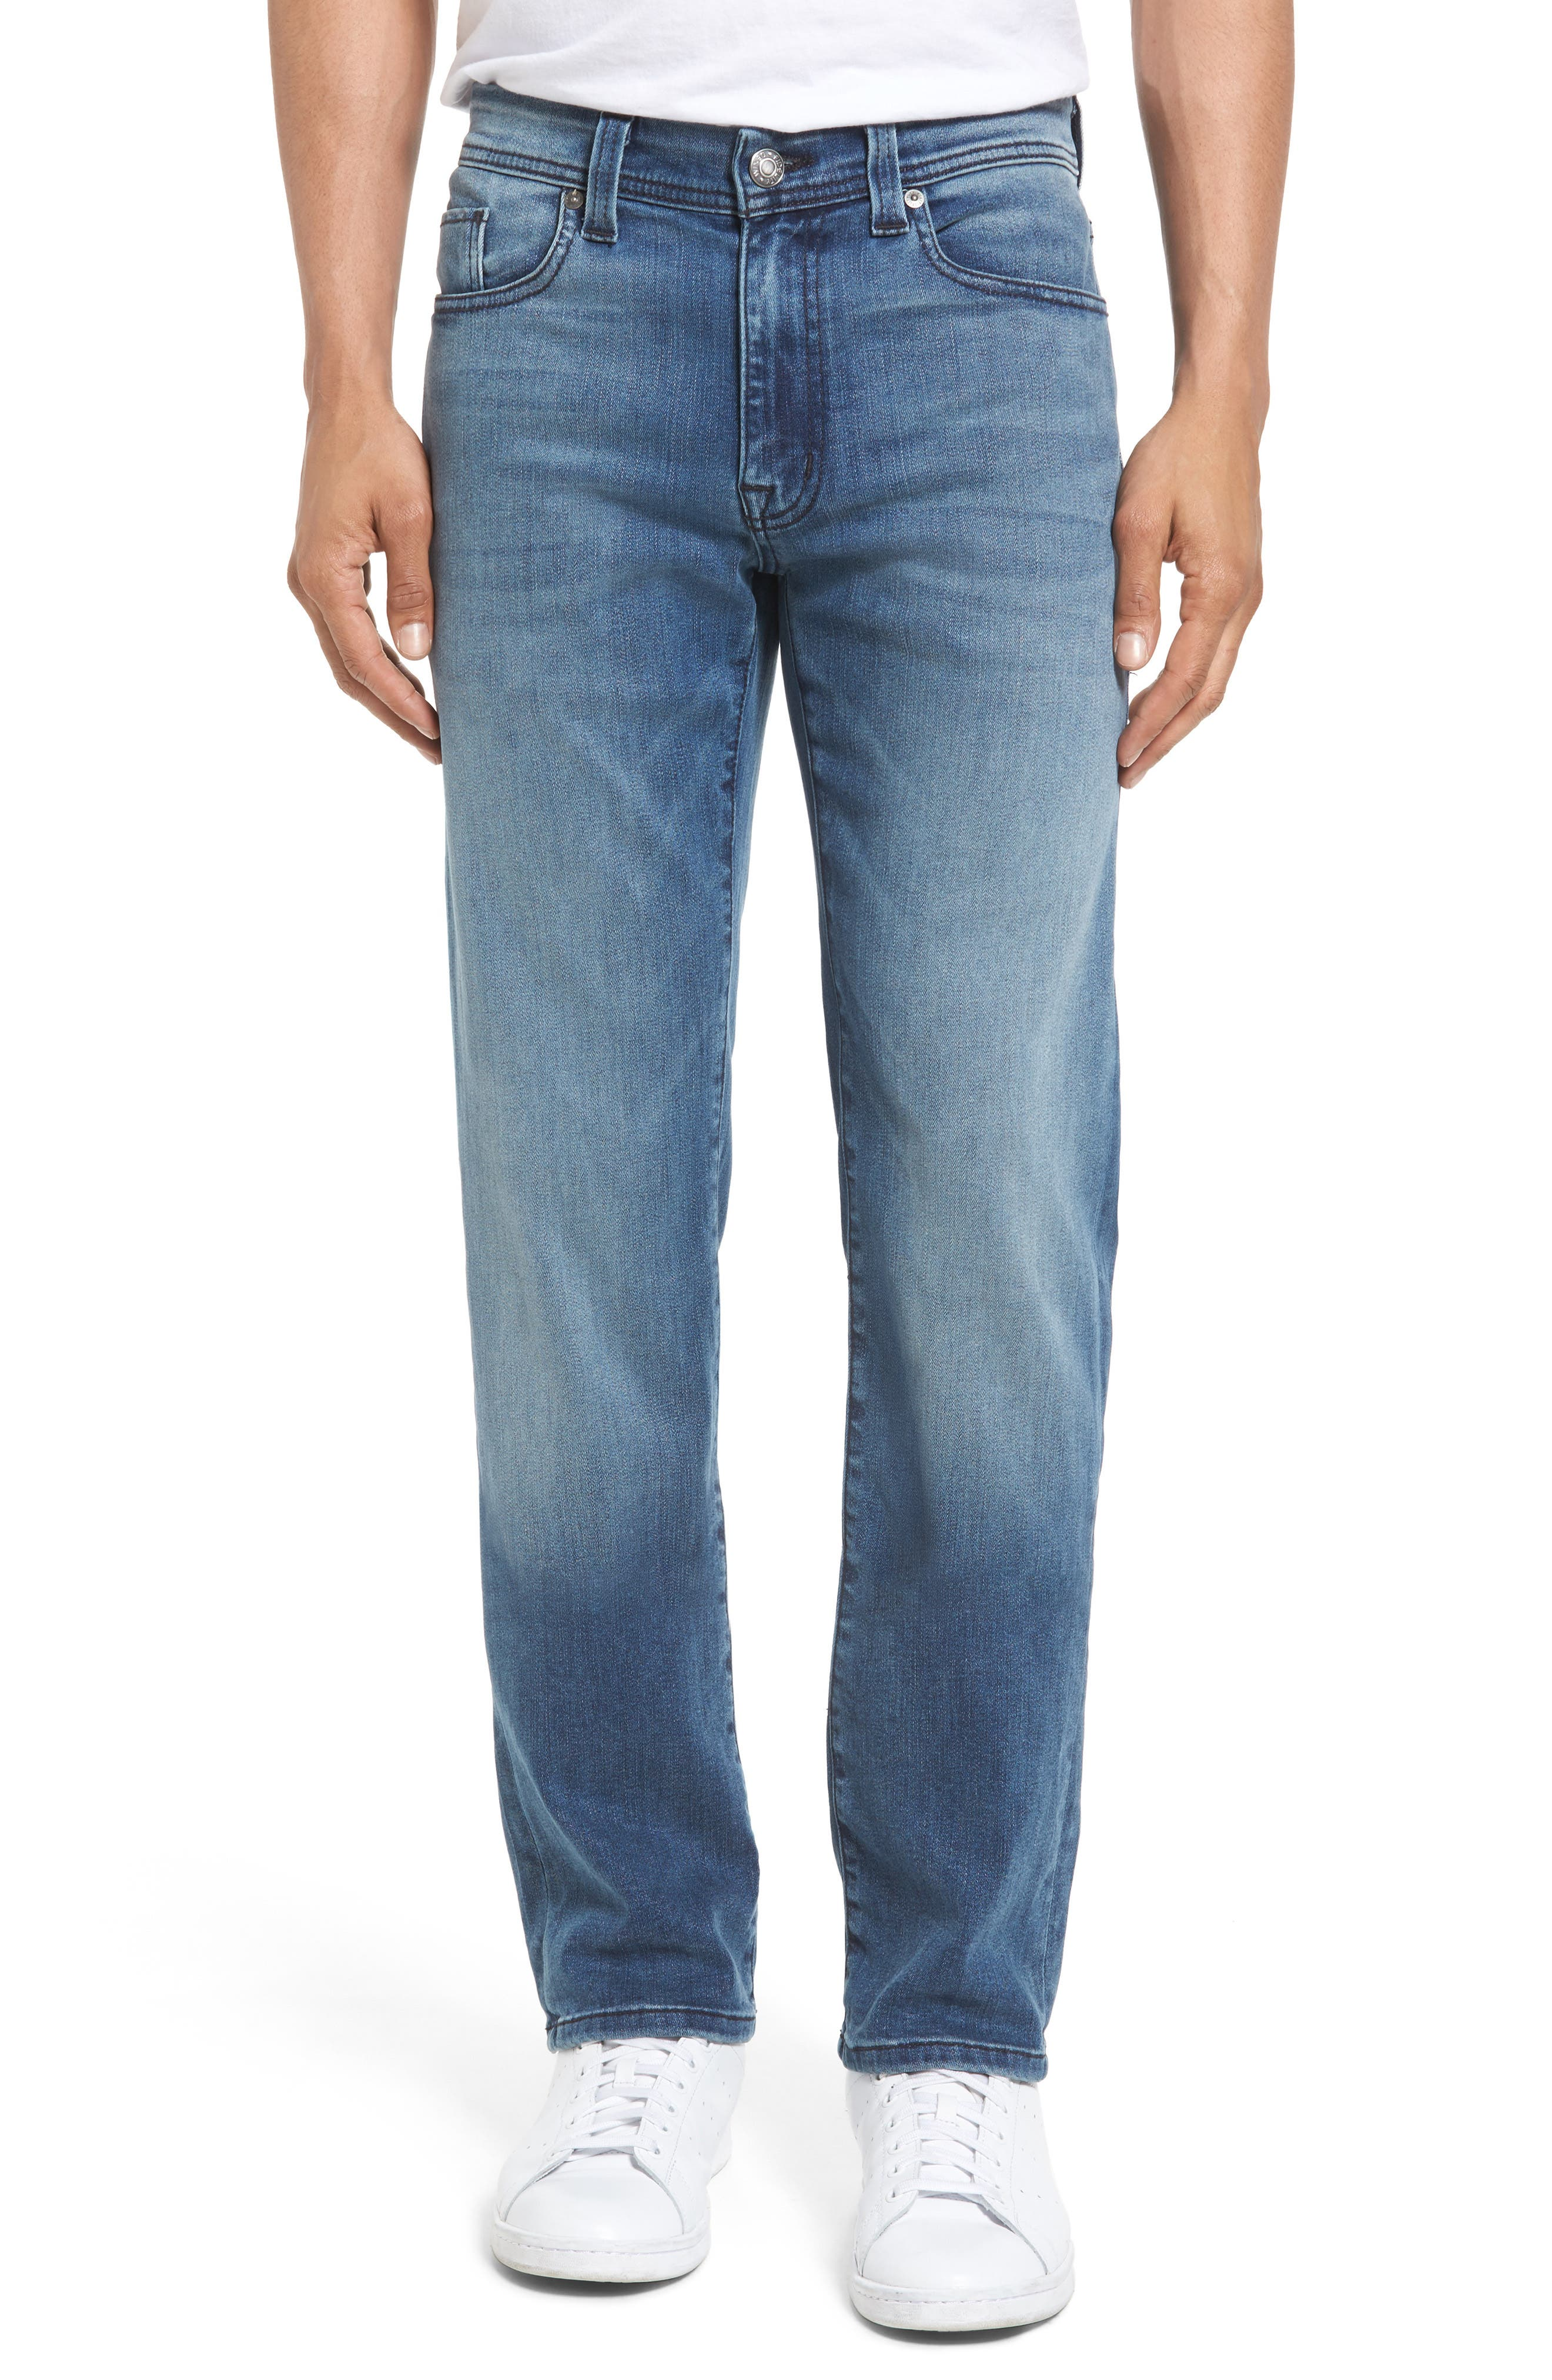 Jimmy Slim Straight Leg Jeans,                         Main,                         color, Cortana Blue